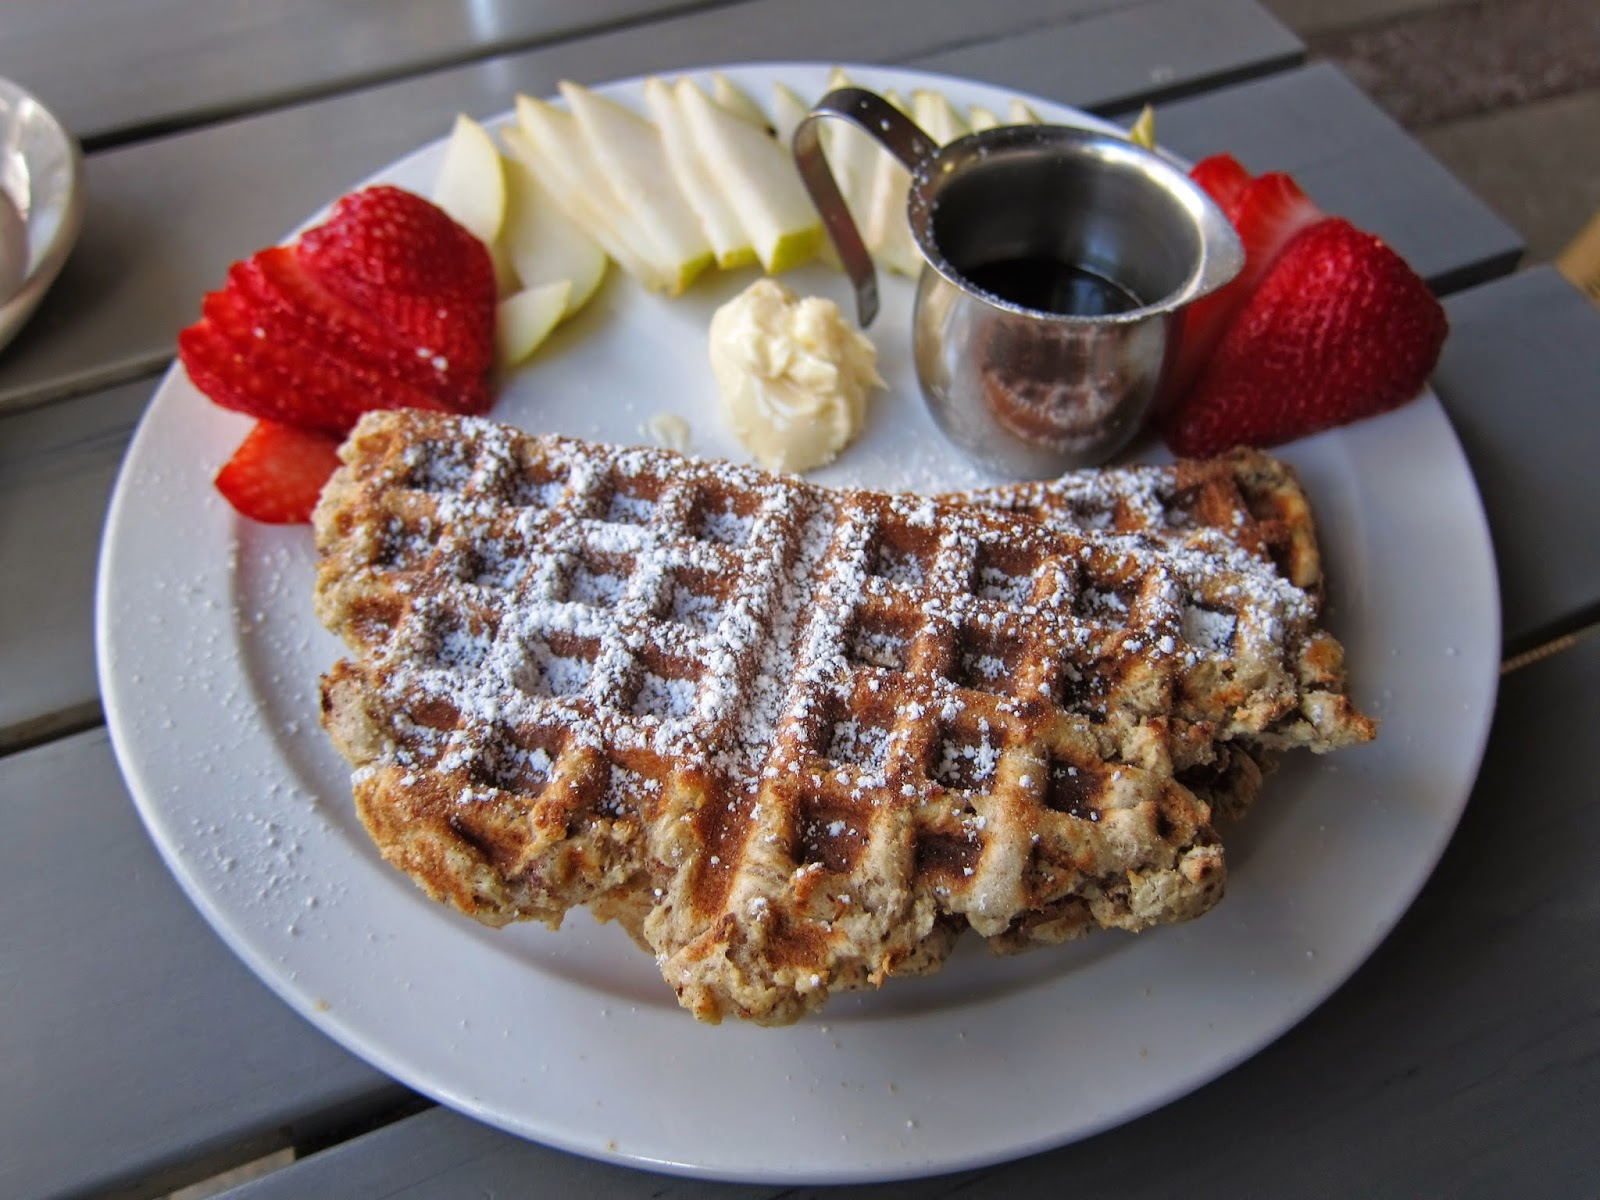 Gluten-free, Dairy-free, Egg-free Breakfast at Green Bliss Cafe (Fullerton, CA)